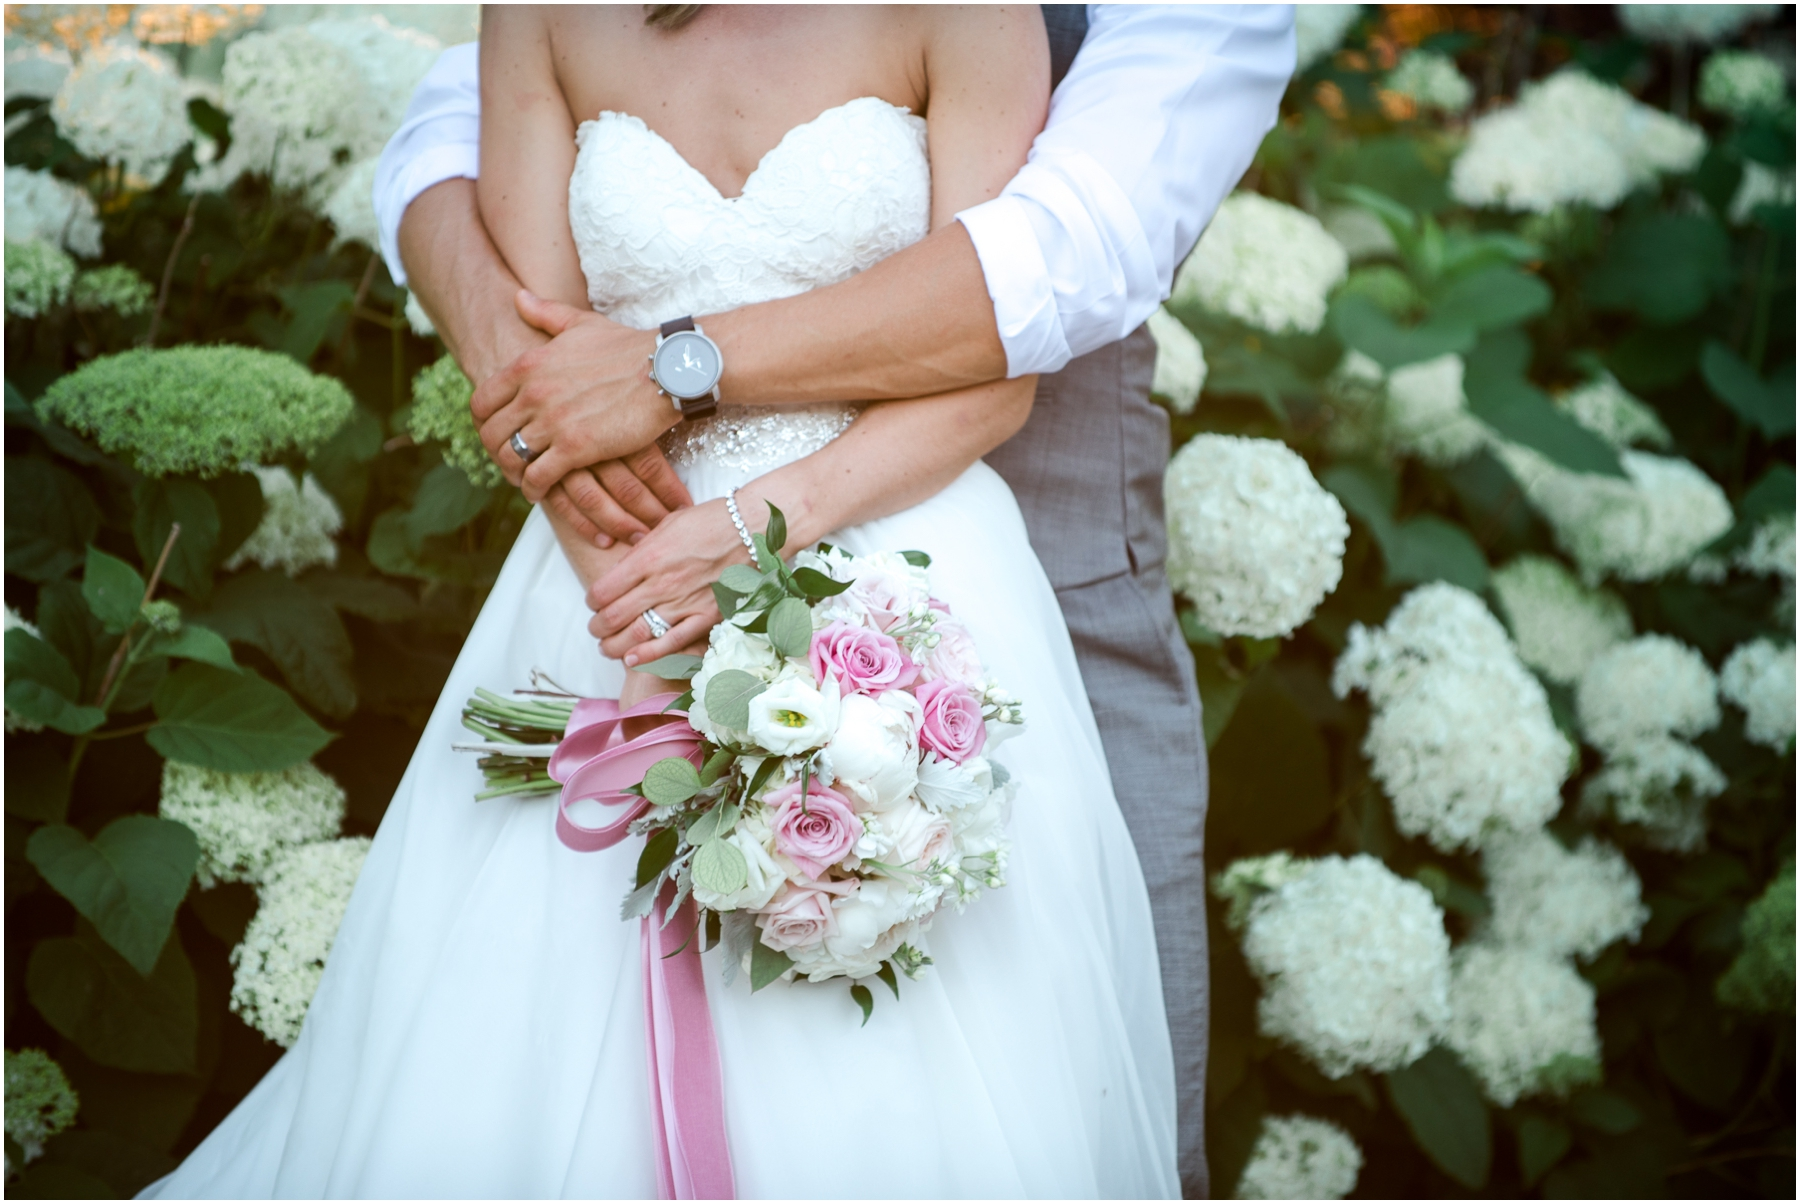 bride and groom's hands holding flowers